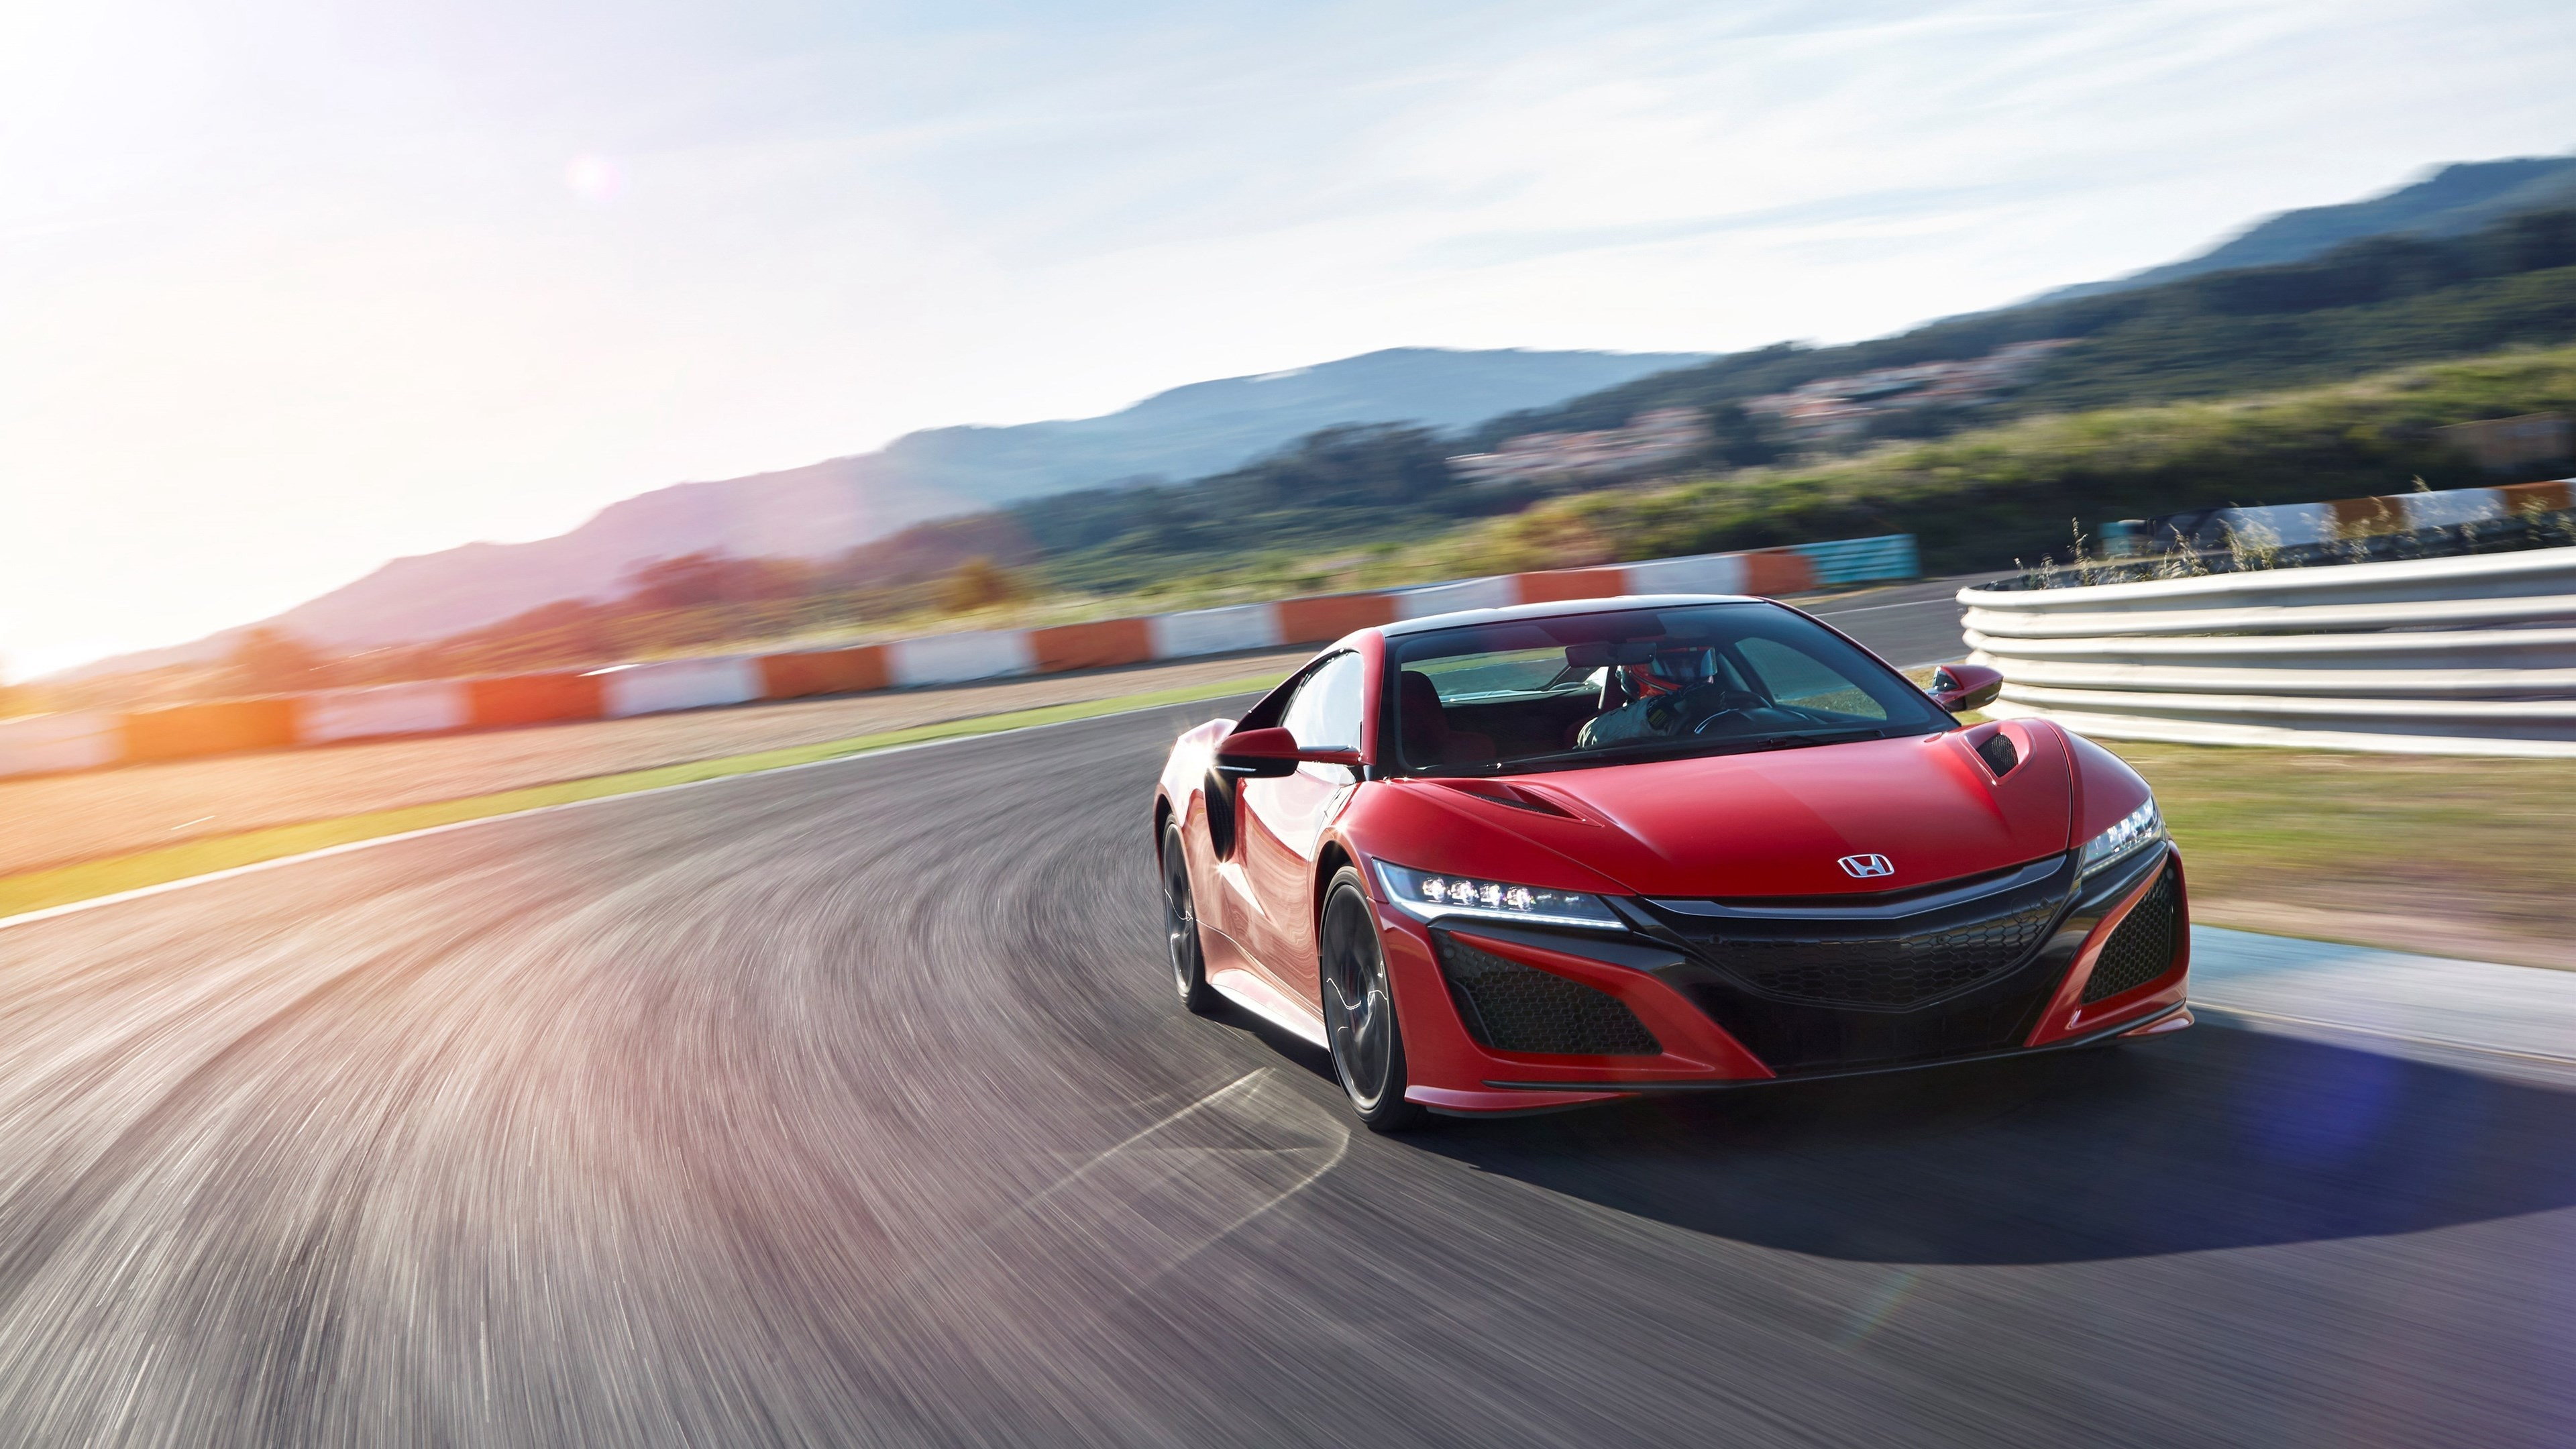 3840x2160  honda nsx 4k free high resolution desktop wallpaper